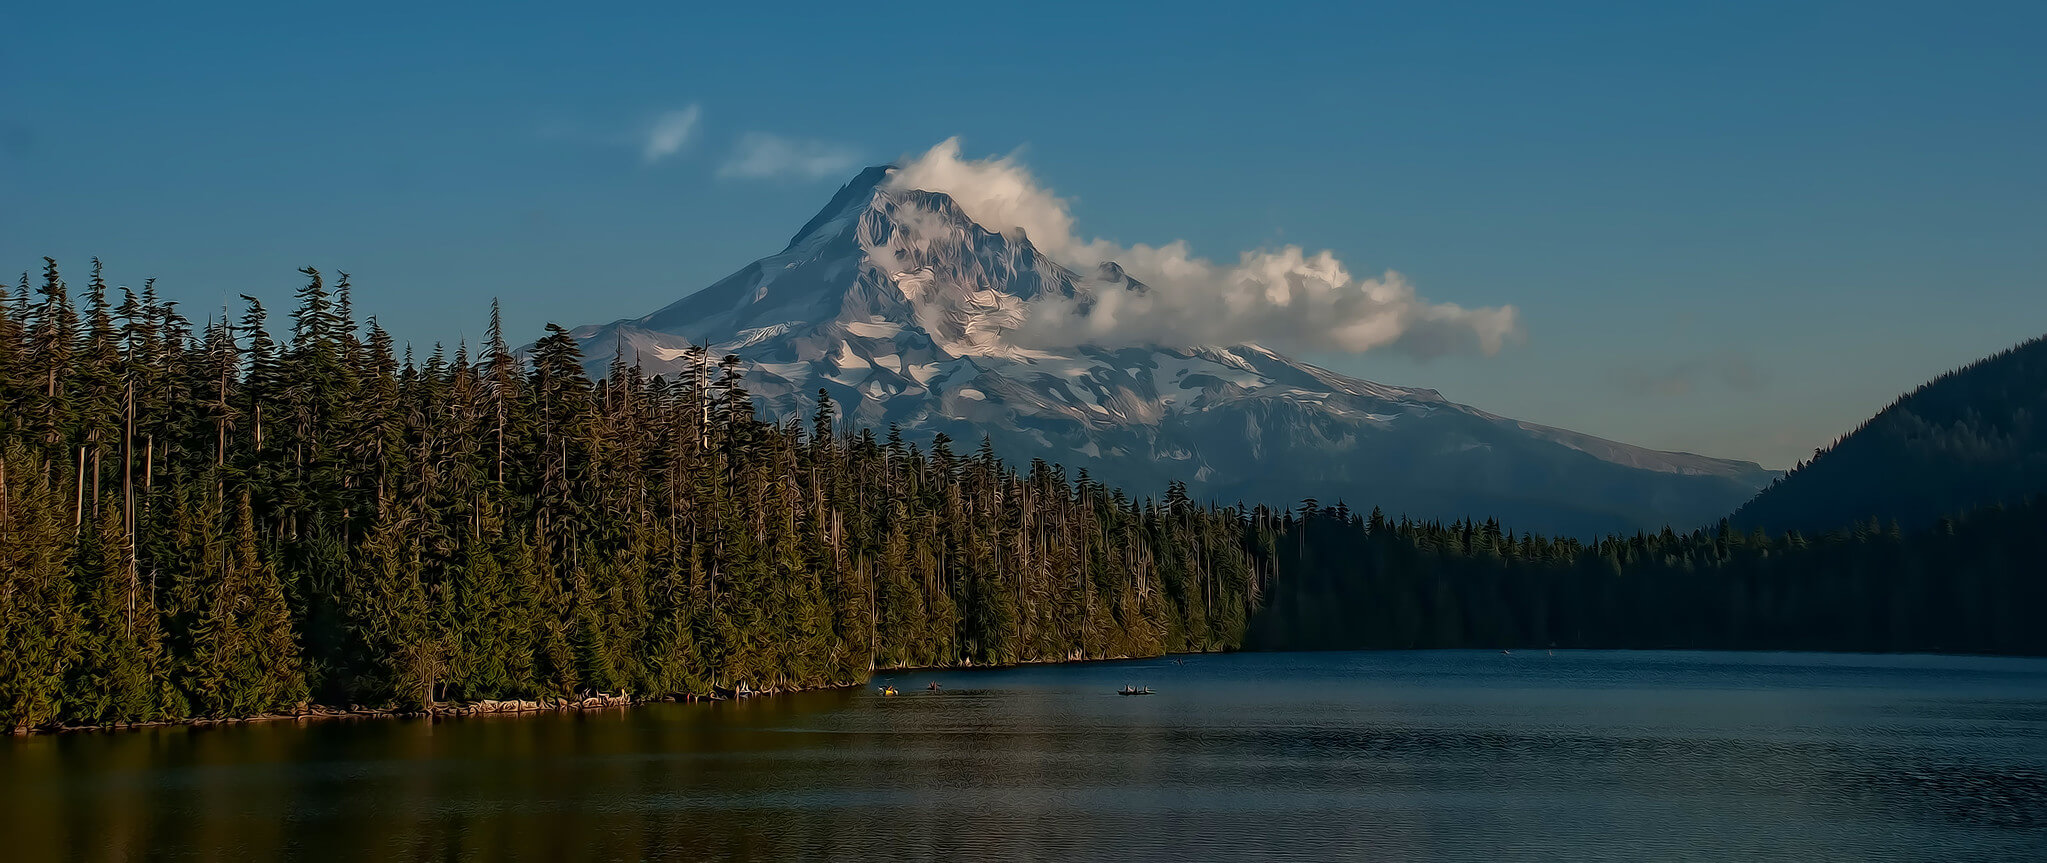 lost lake and mt. hood in the background